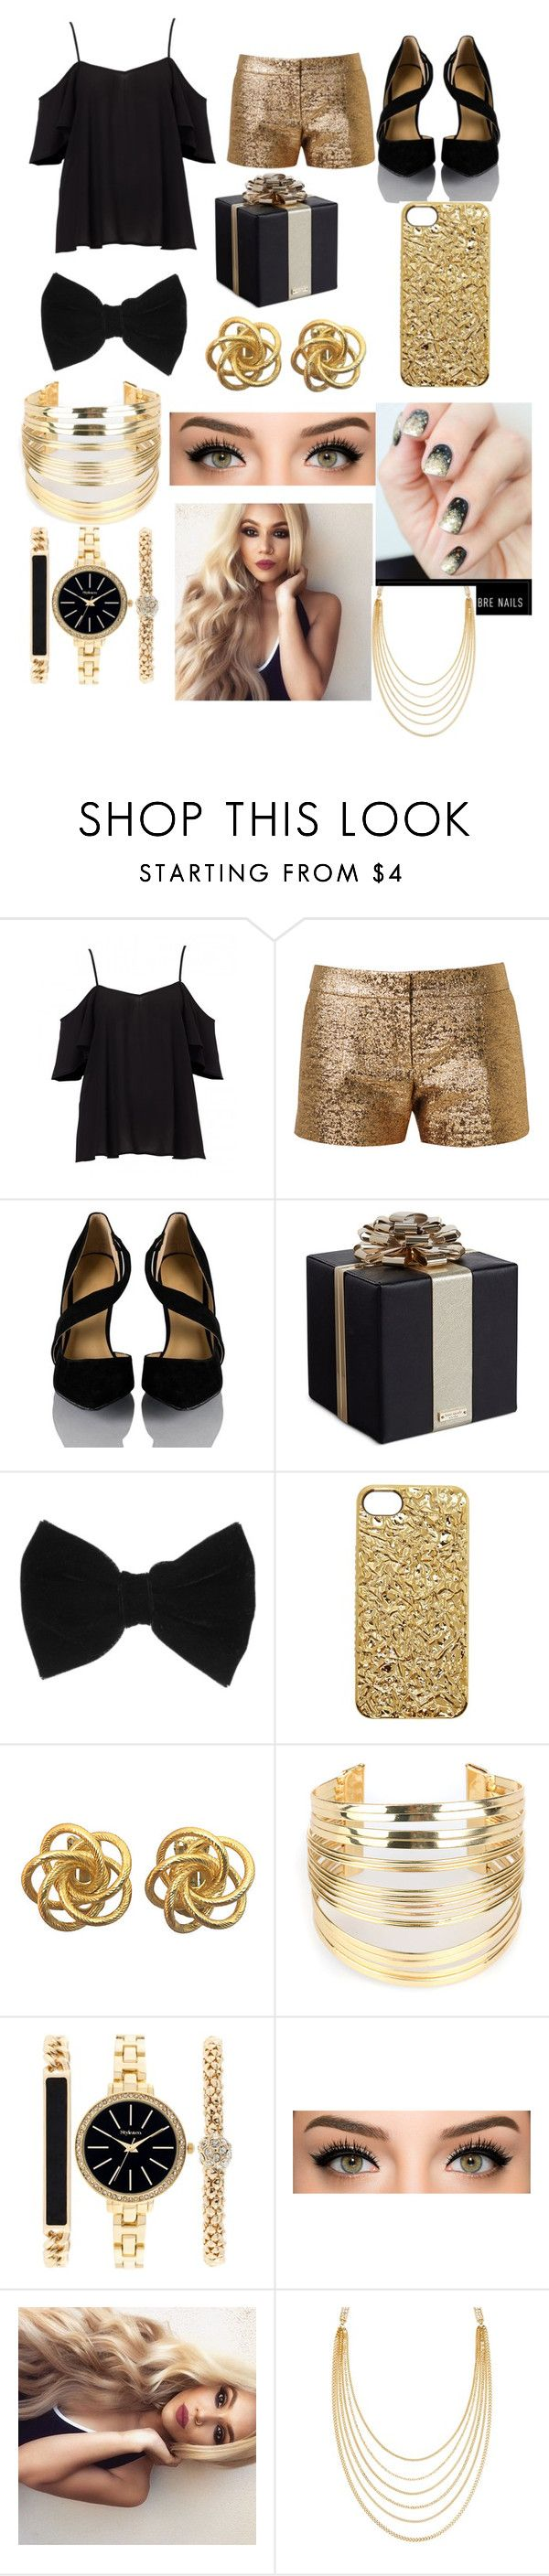 """""""Black and gold"""" by tony-romo-rocks ❤ liked on Polyvore featuring Lanvin, Kate Spade, claire's, Marc by Marc Jacobs, WithChic, Style & Co. and White House Black Market"""